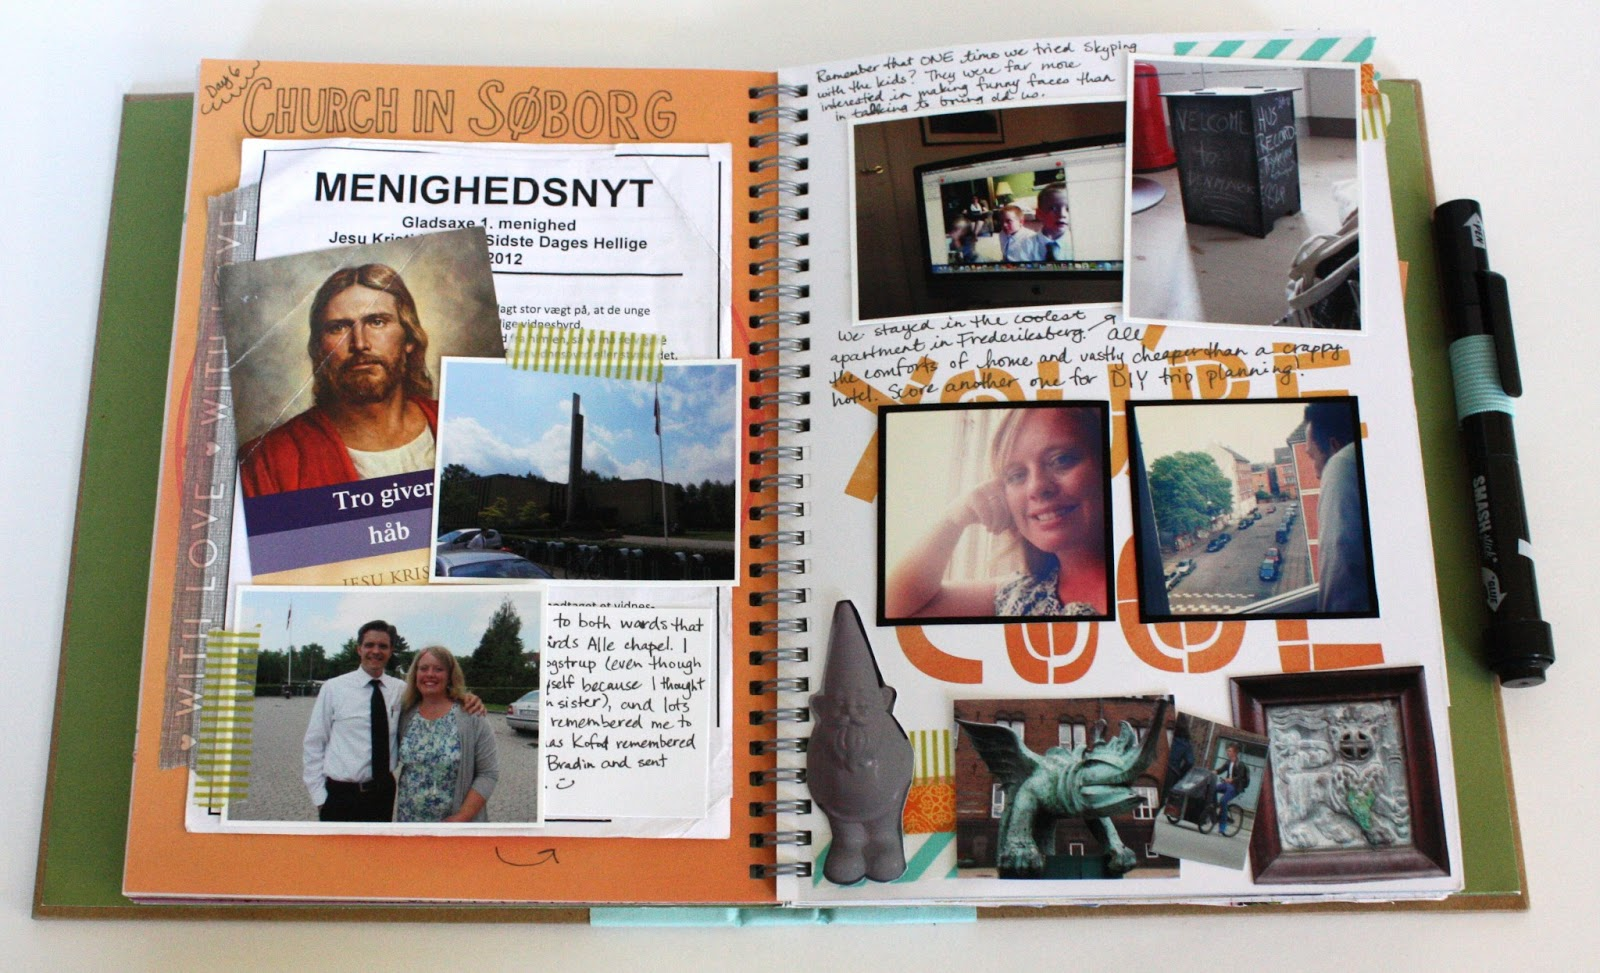 Scrapbook ideas adventure - Any Lds Friends Might Recognize The Guy In This Picture As The Actor Who Played Jesus In The Testaments He Was In My Ward When I Was A Missionary